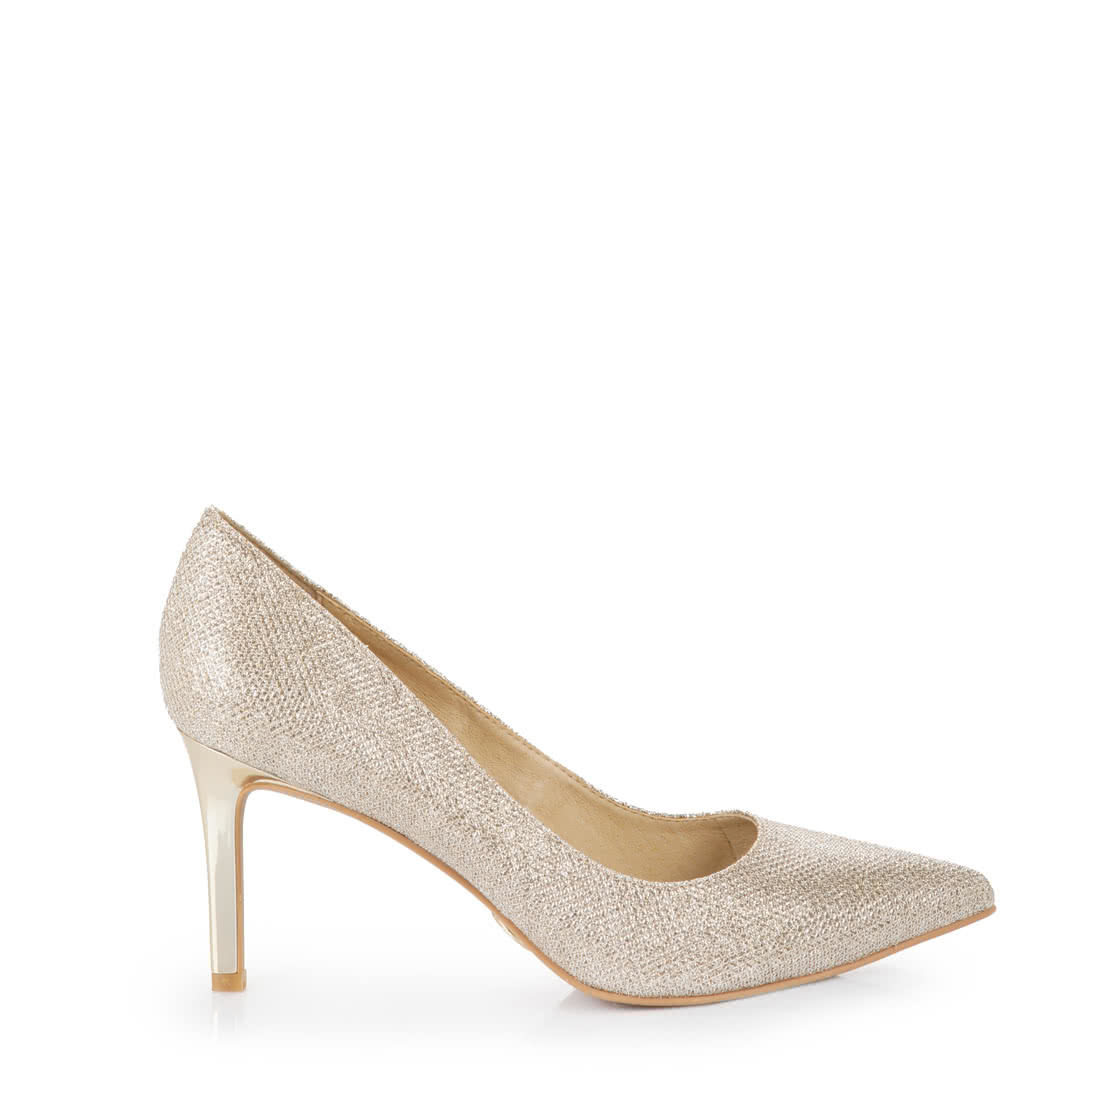 Side By Side Schmal Buffalo Pumps In Gold Buy Online In Buffalo Online Shop Buffalo